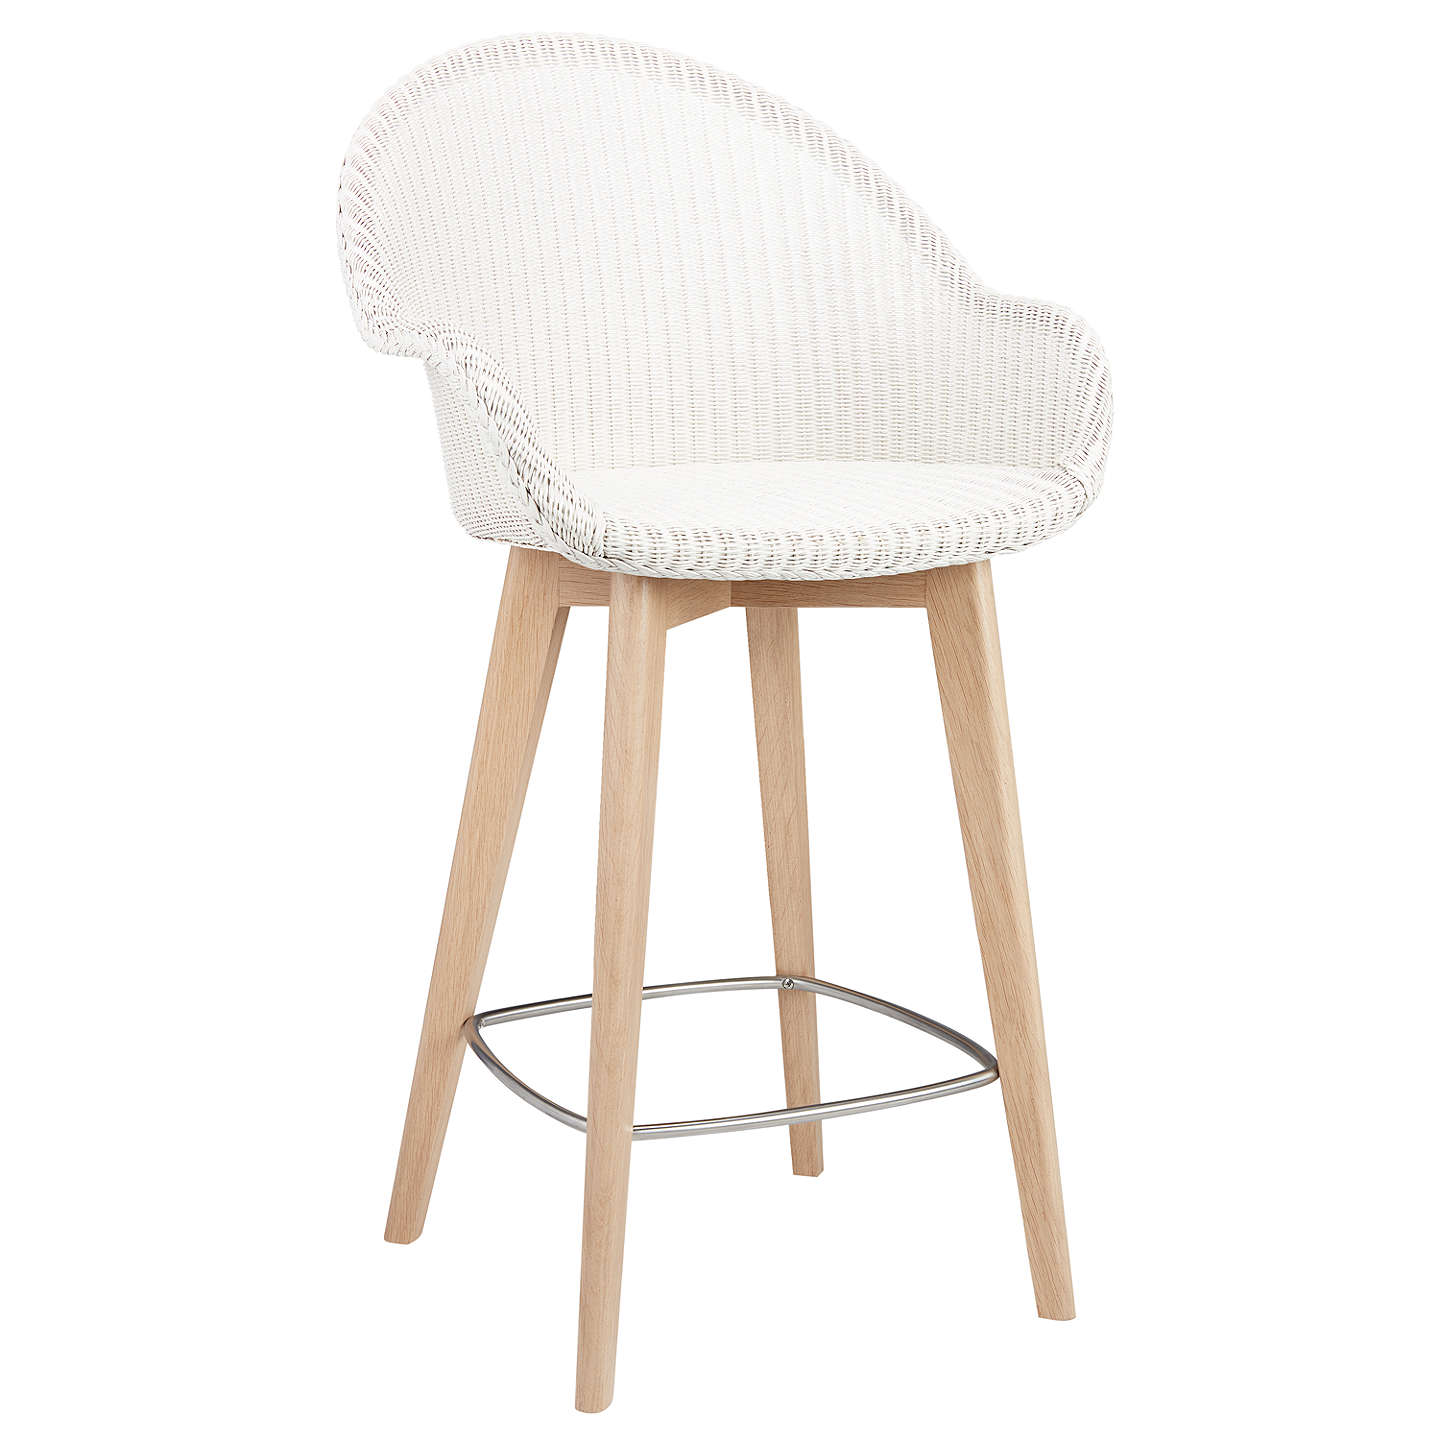 Kitchen Stools At John Lewis: Croft Collection Easdale Lloyd Loom Bar Chair At John Lewis